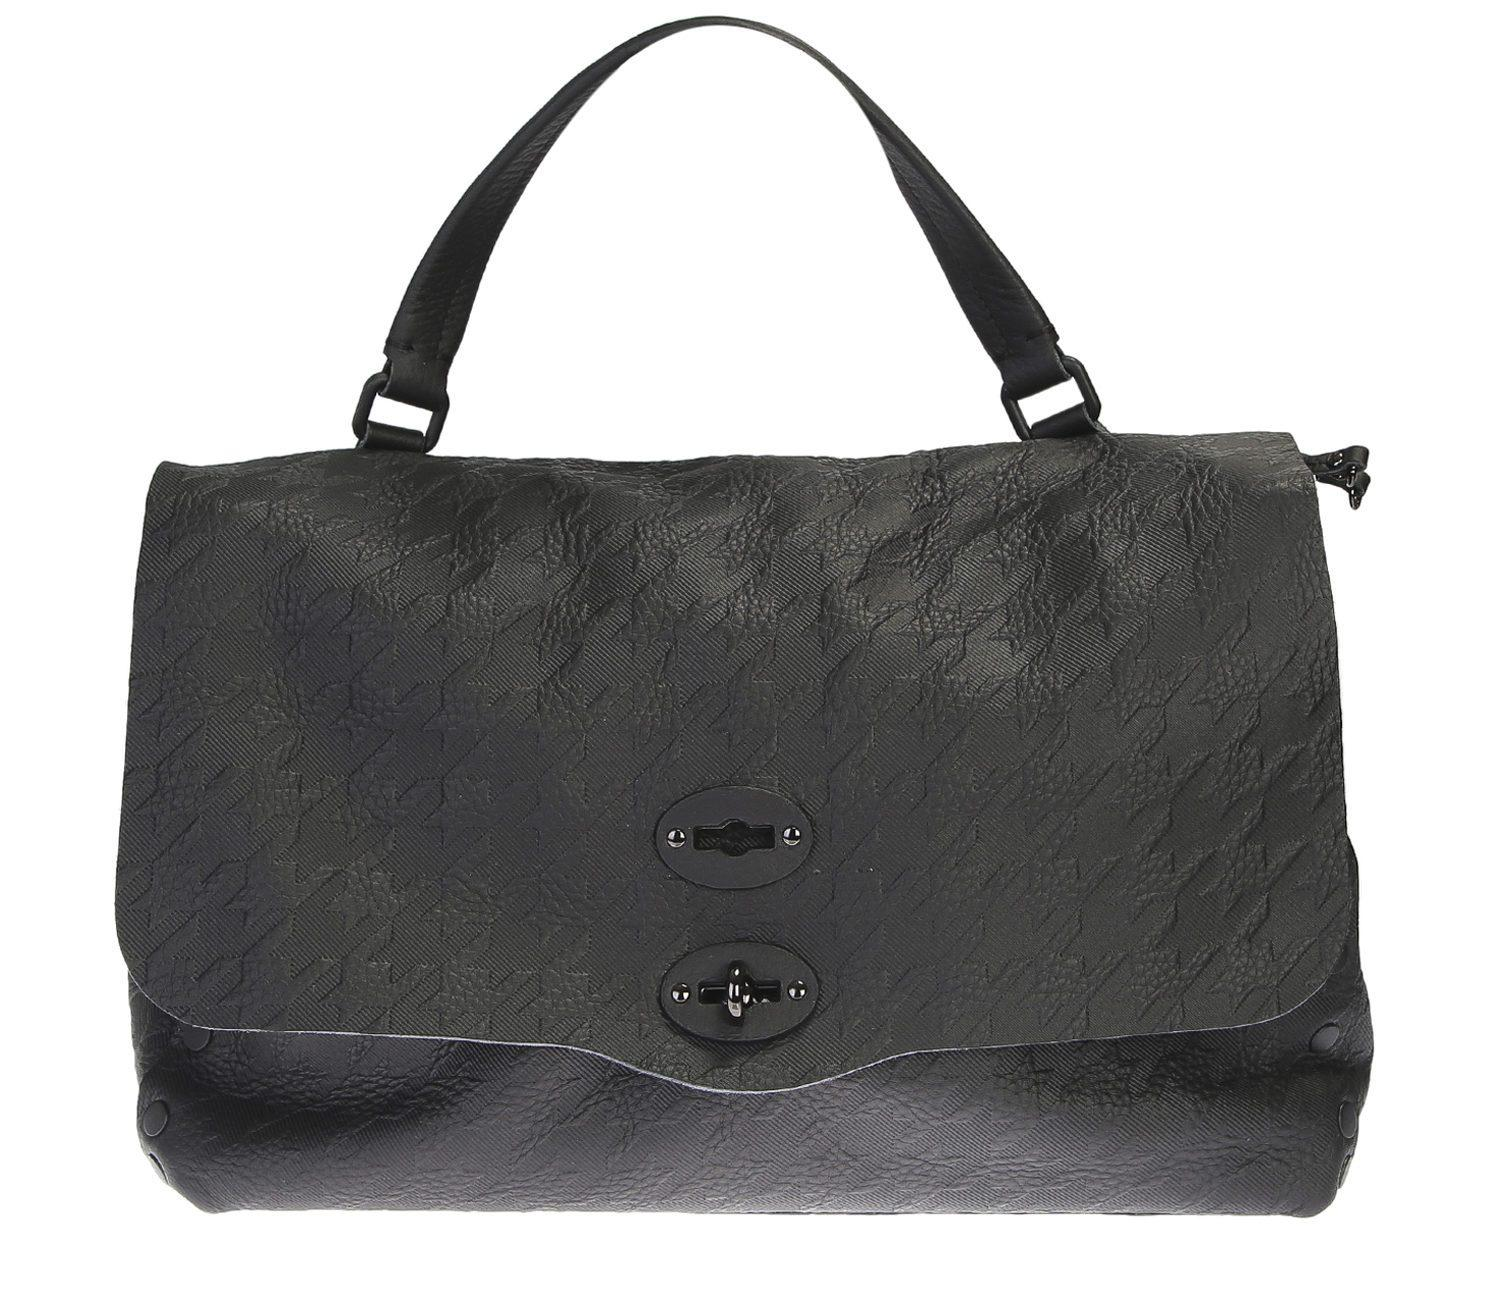 284e8b4e2c8 Lyst - Zanellato Postina M Pura Tabarin Coated Leather Bag in Black